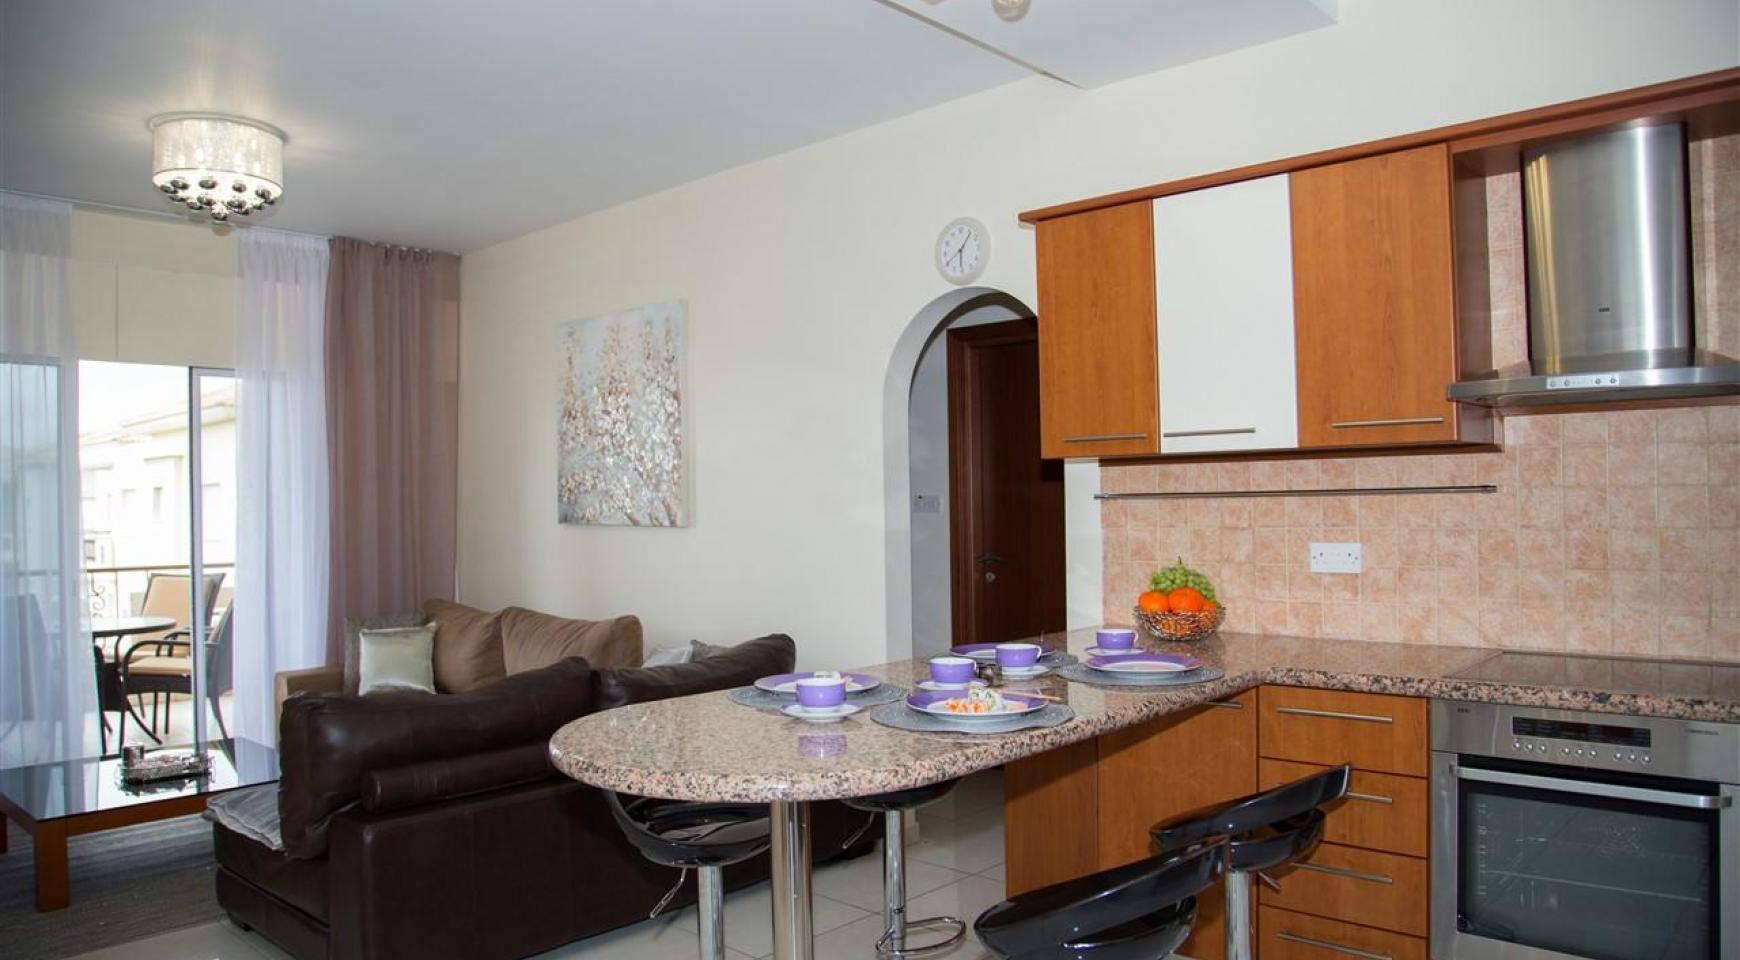 2 Bedroom Apartment in the Complex near the Sea - 3